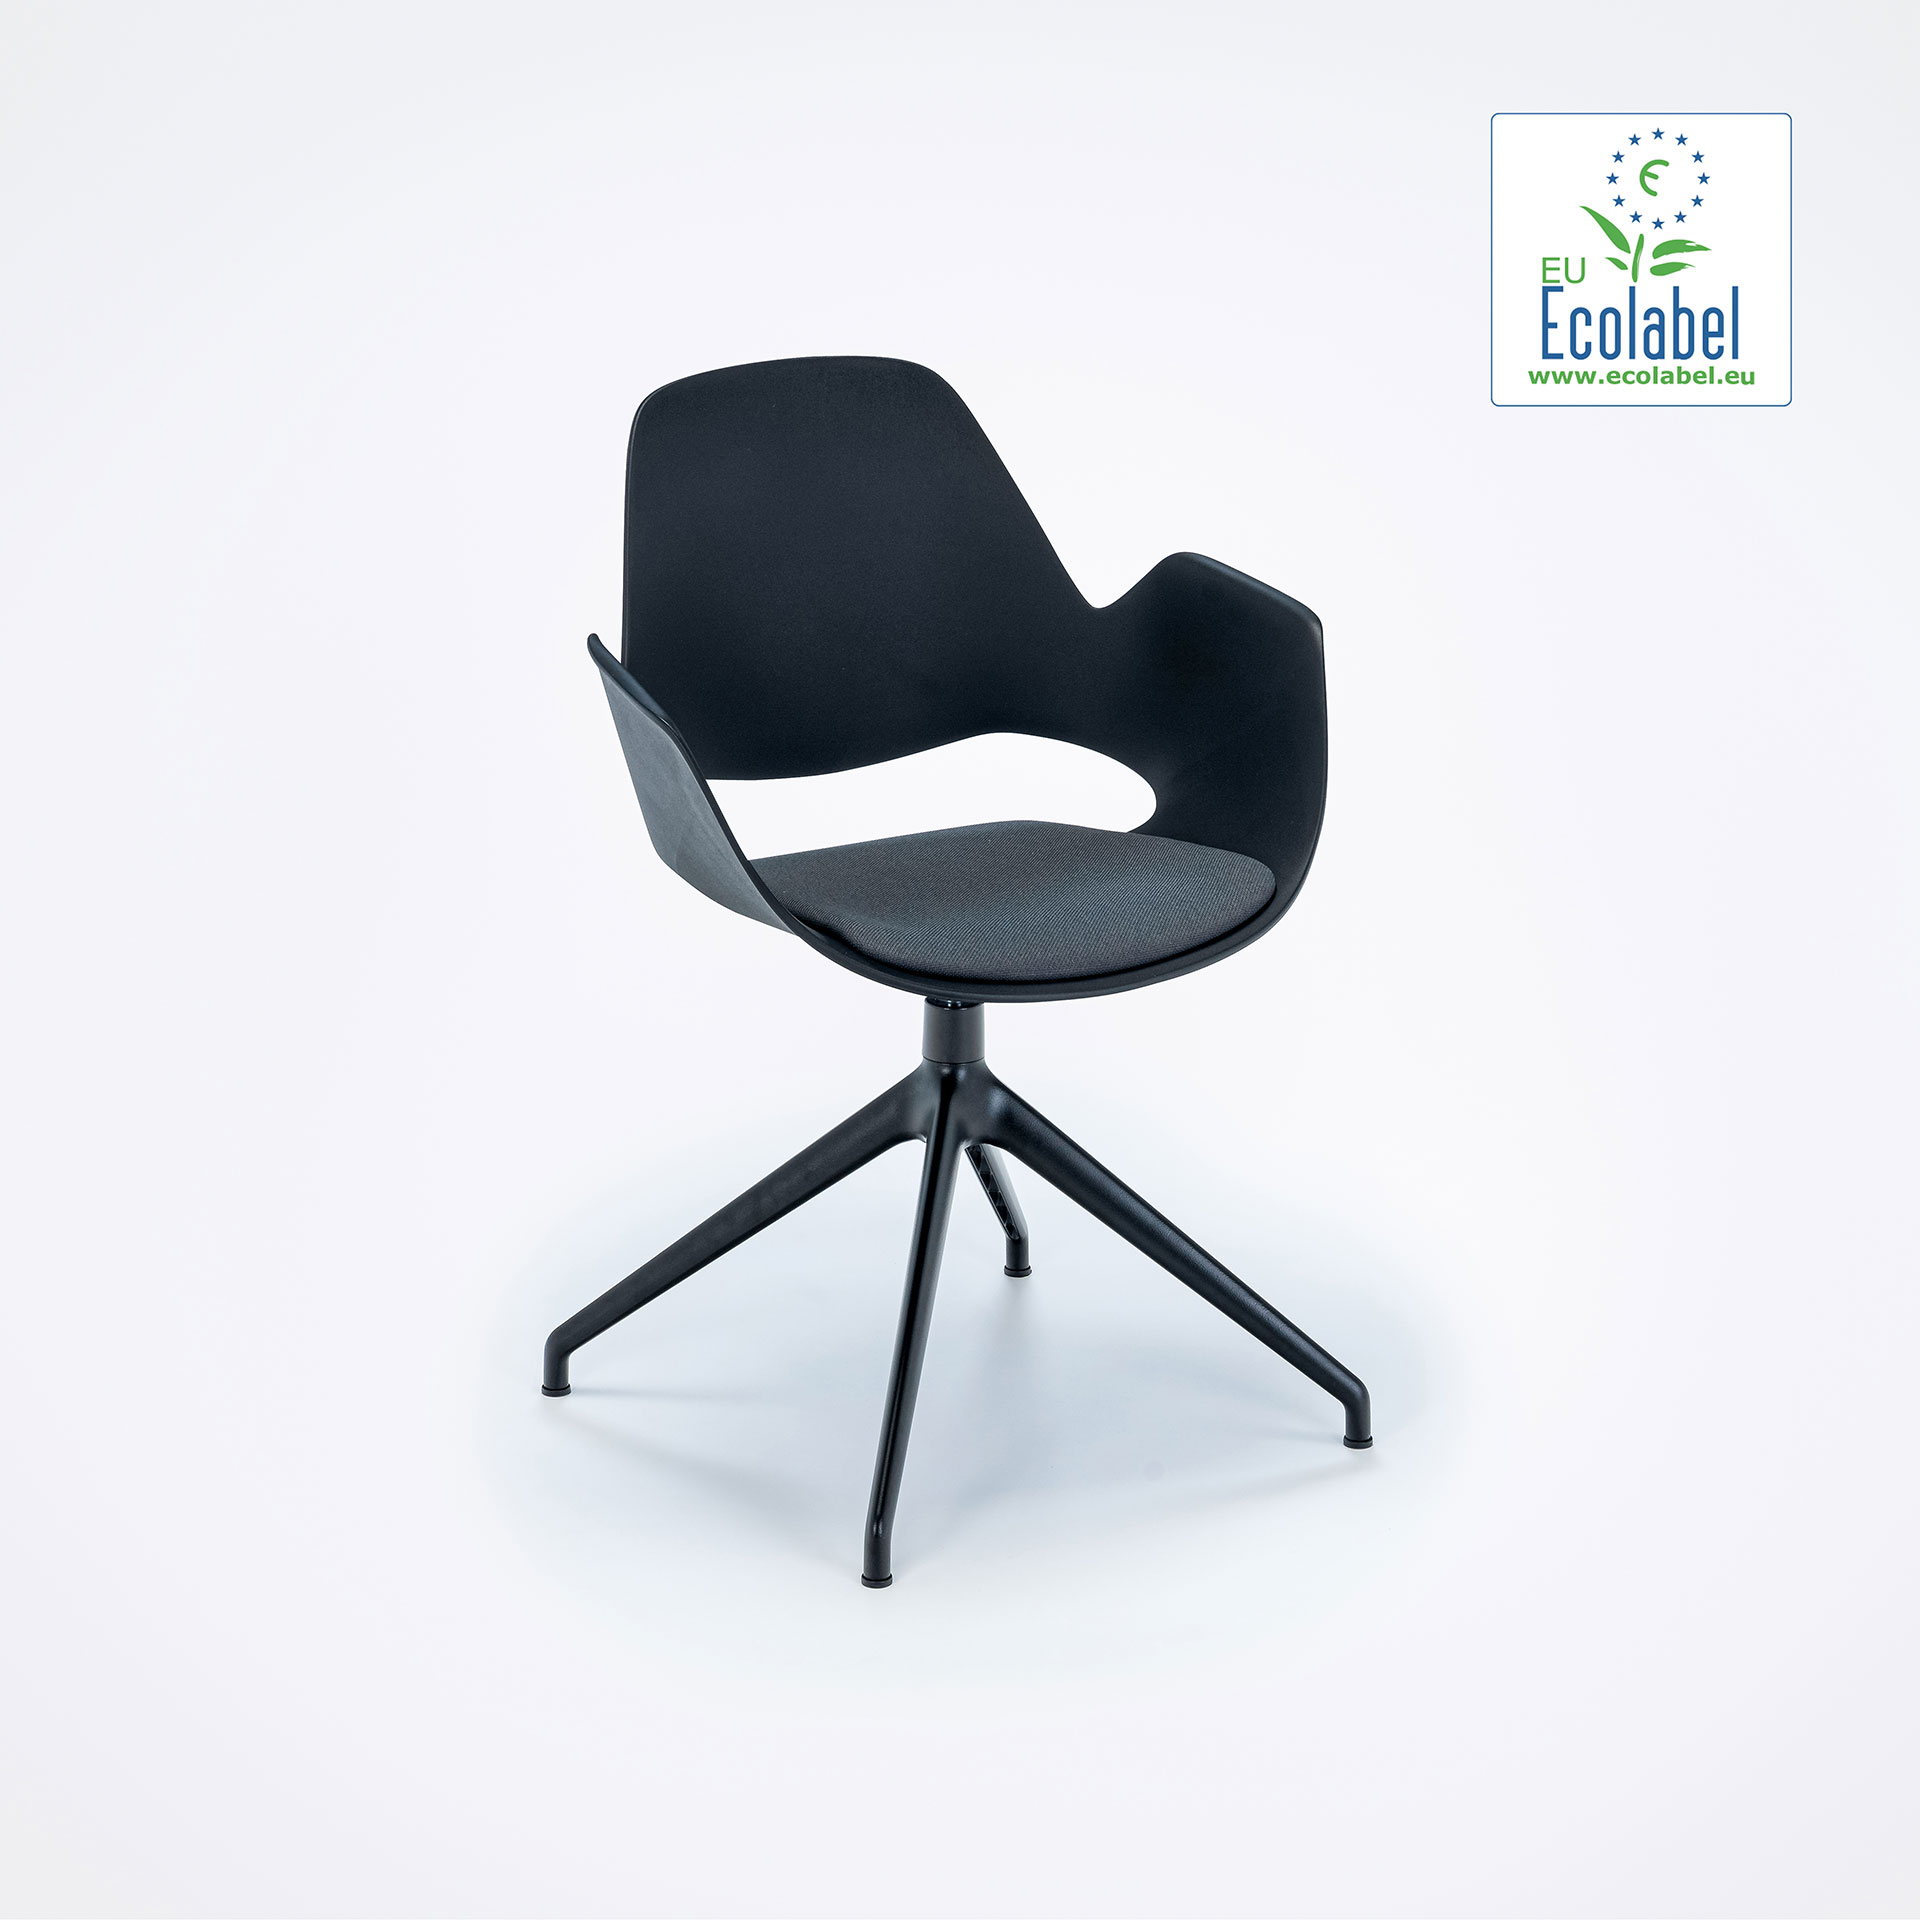 DINING ARMCHAIR // PADDED SEAT // Black/Dark grey // 4 star swivel base